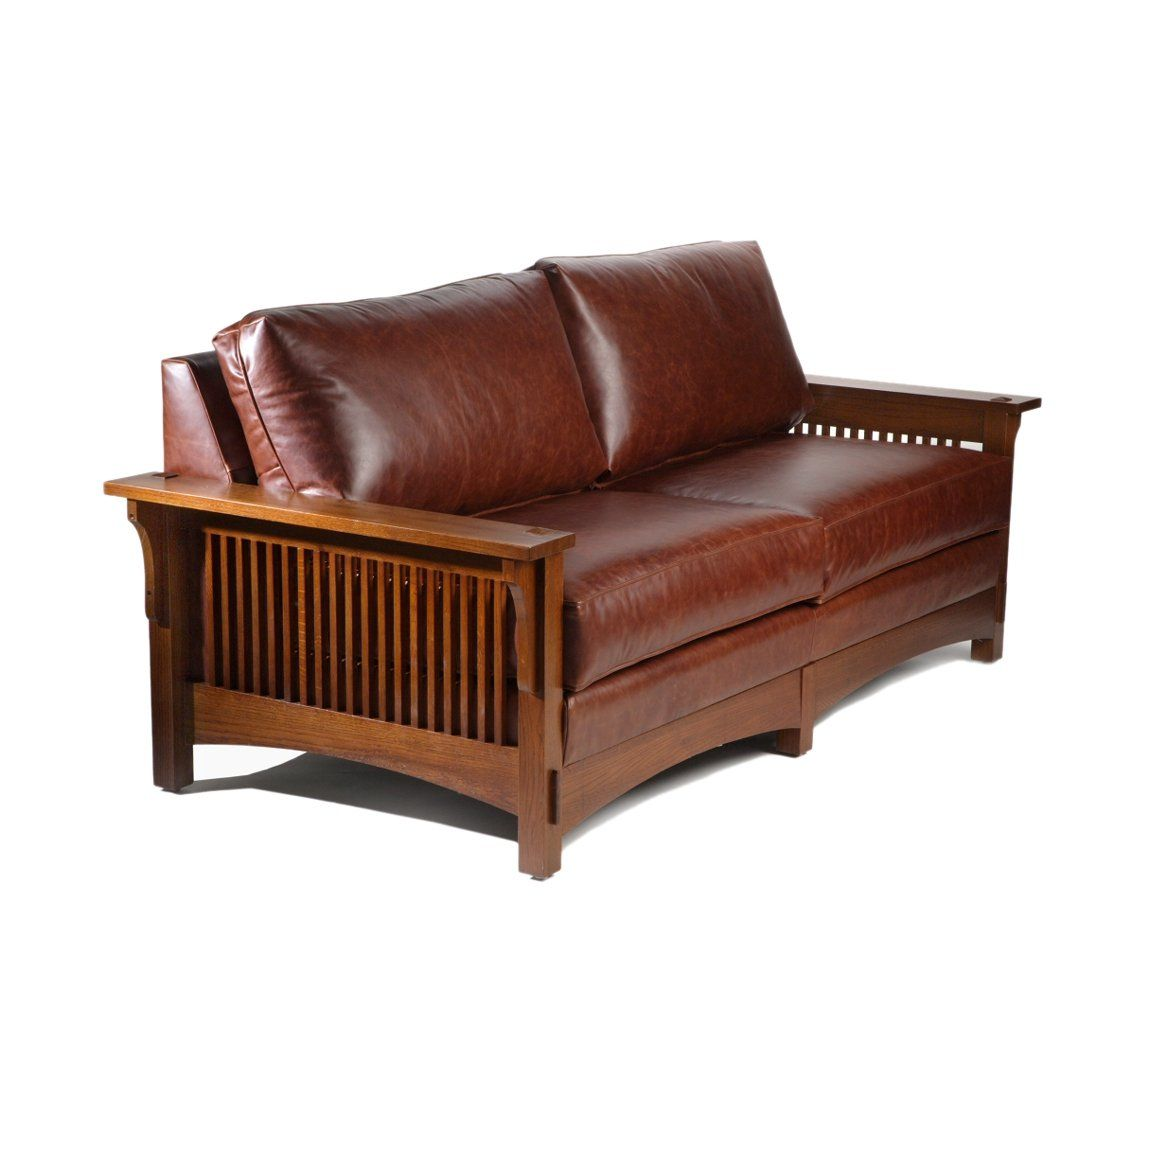 Arts and crafts style sofa - Arts And Crafts Style Sofa Arts And Crafts Style Sofa Arts Crafts 9602 Mission Loveseat